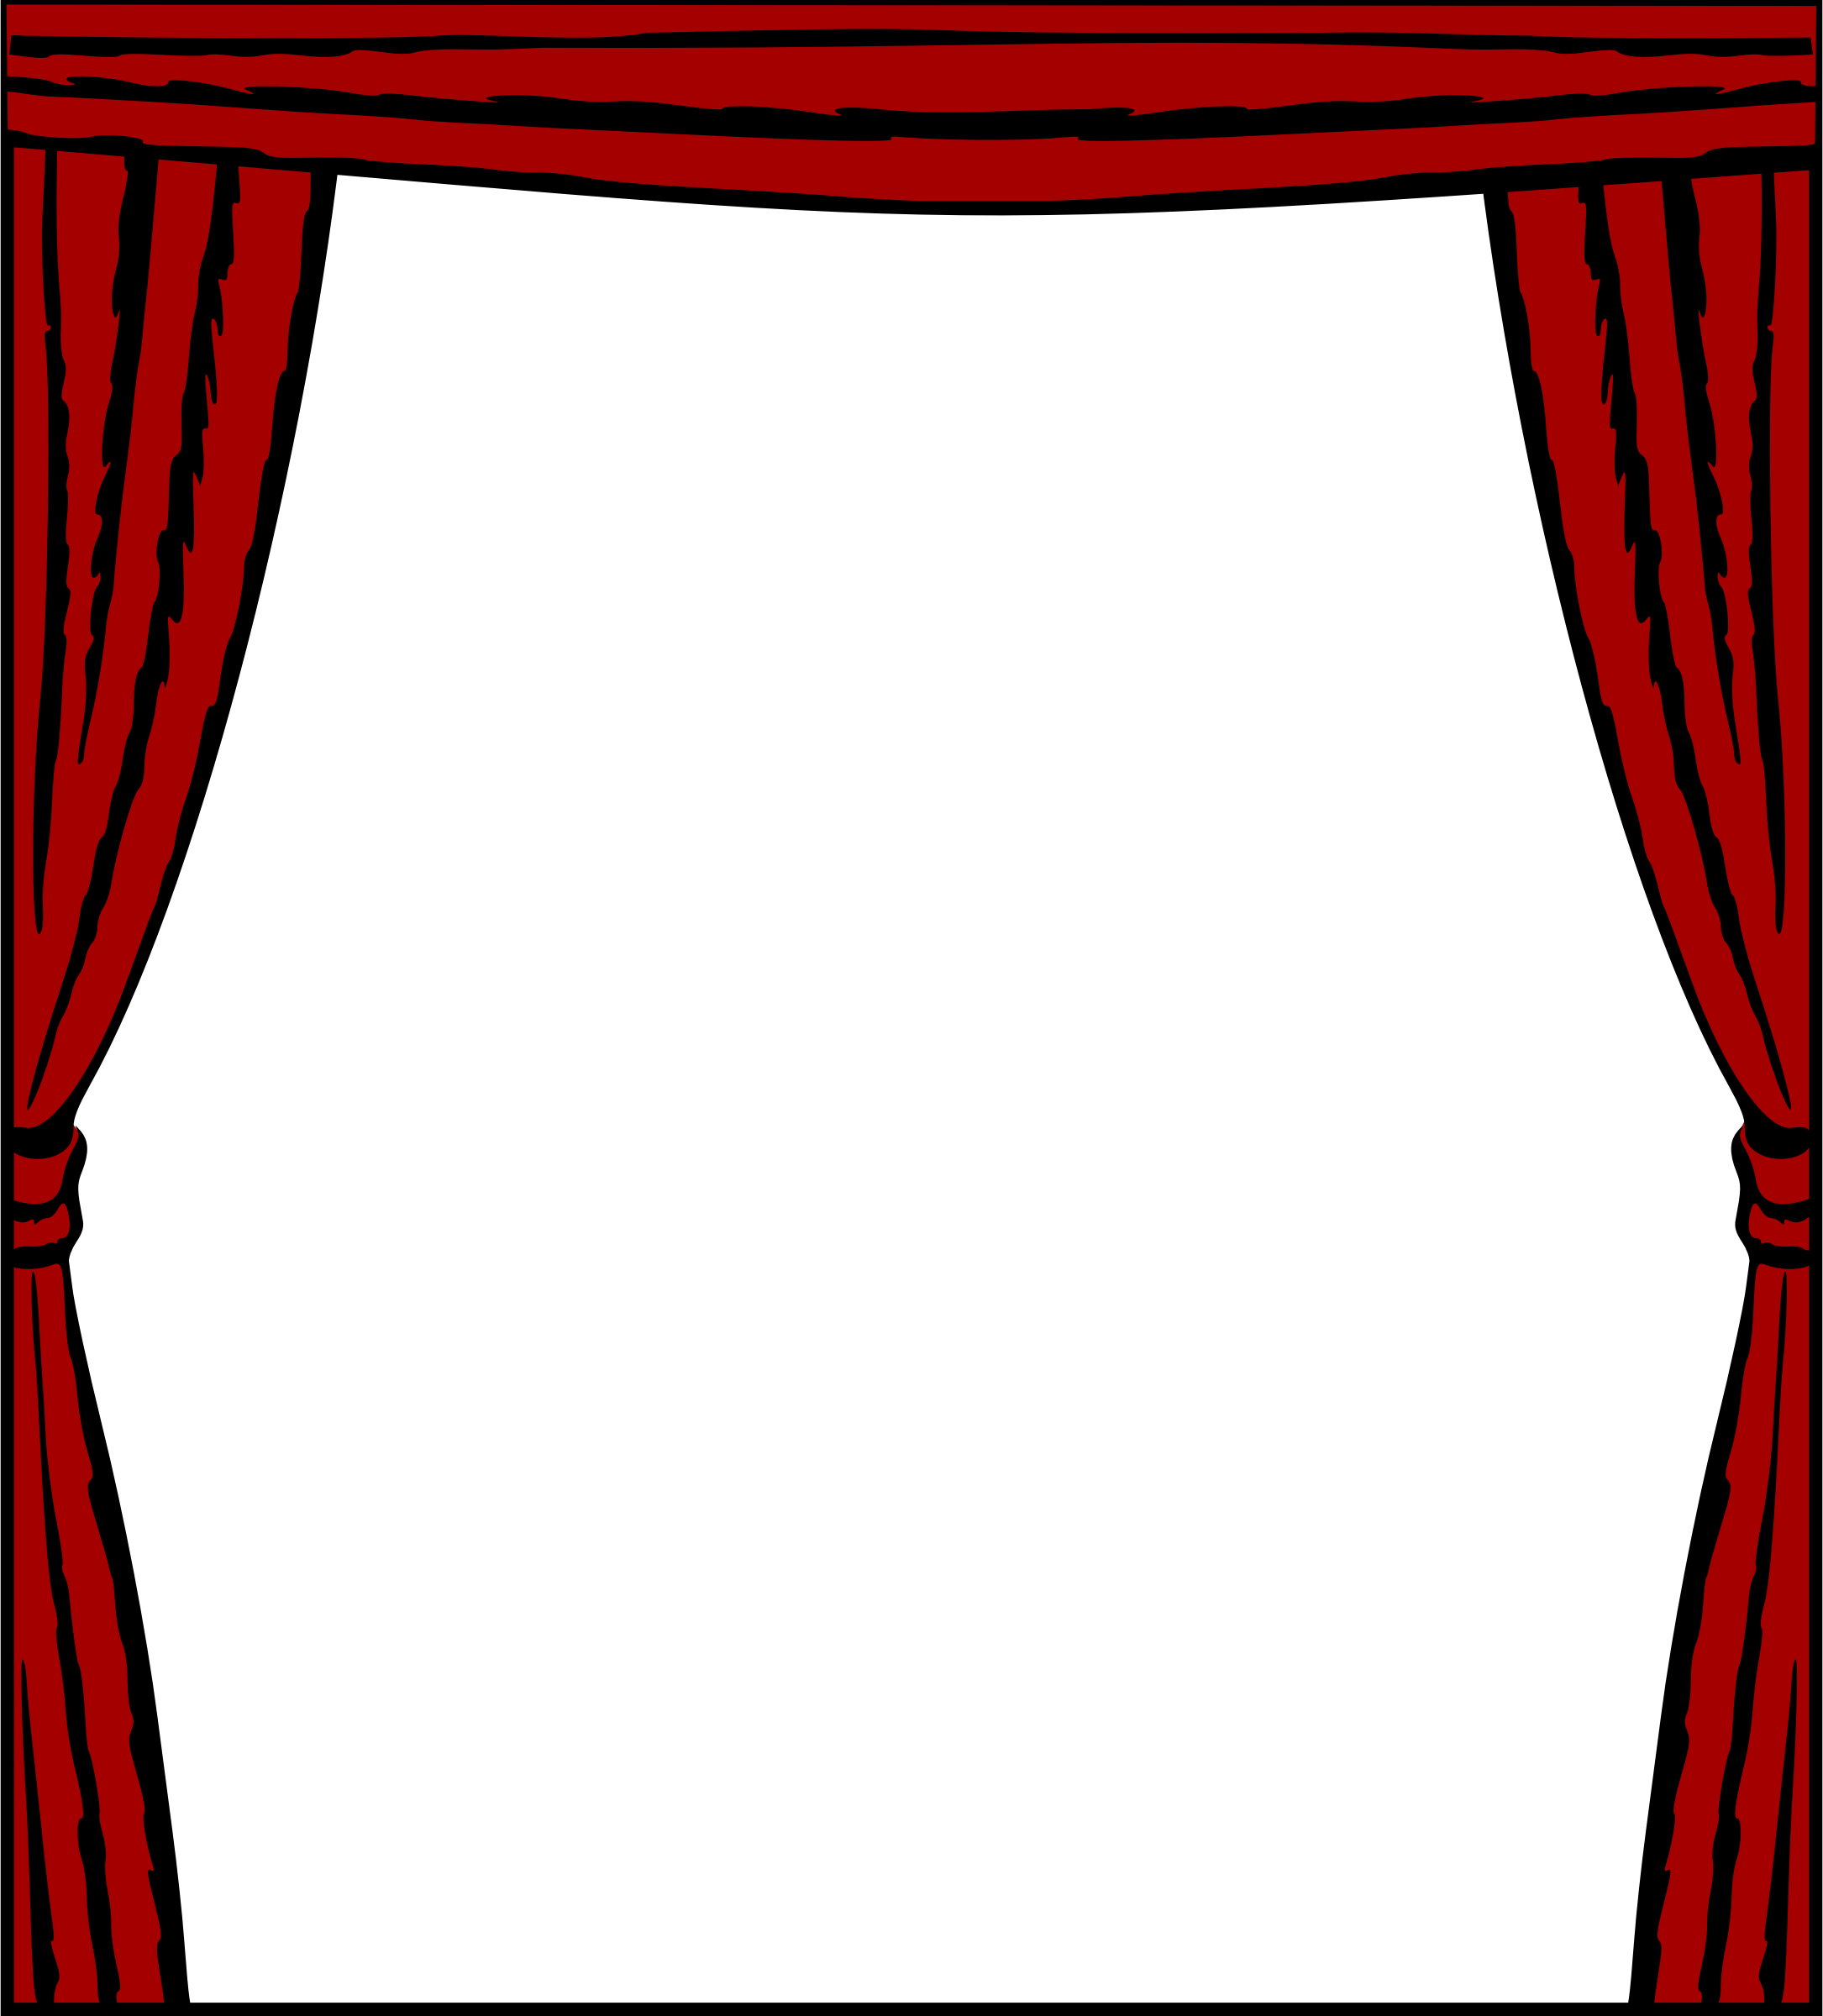 Curtain frame by Firkin